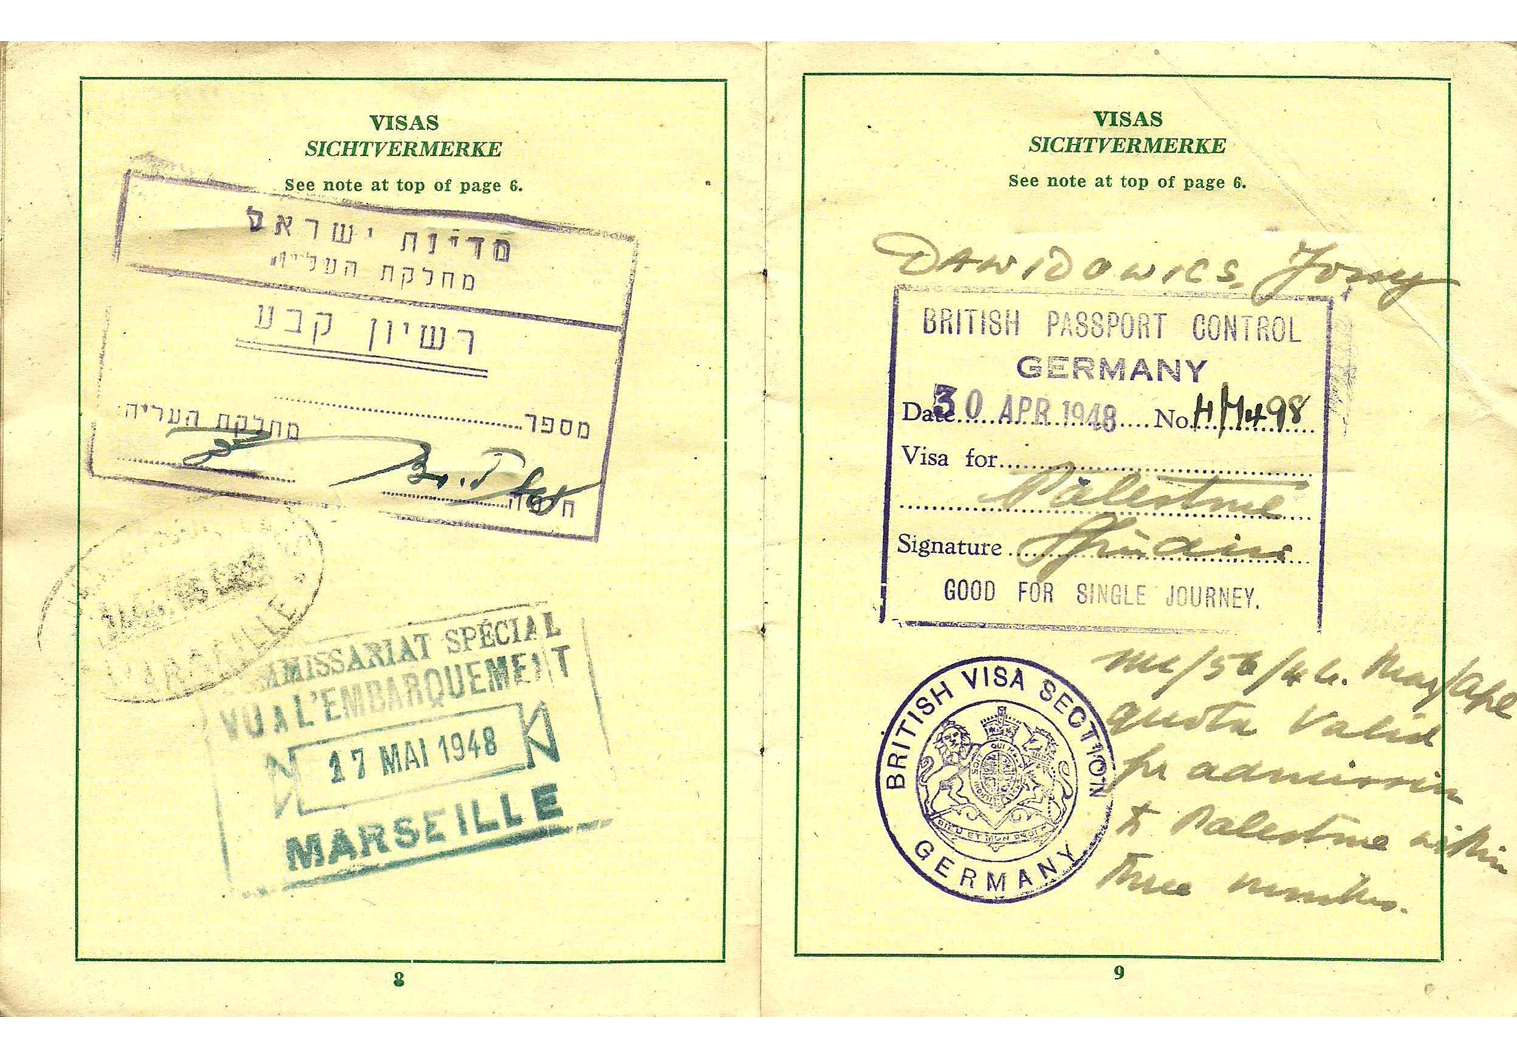 WW2 refugee passport